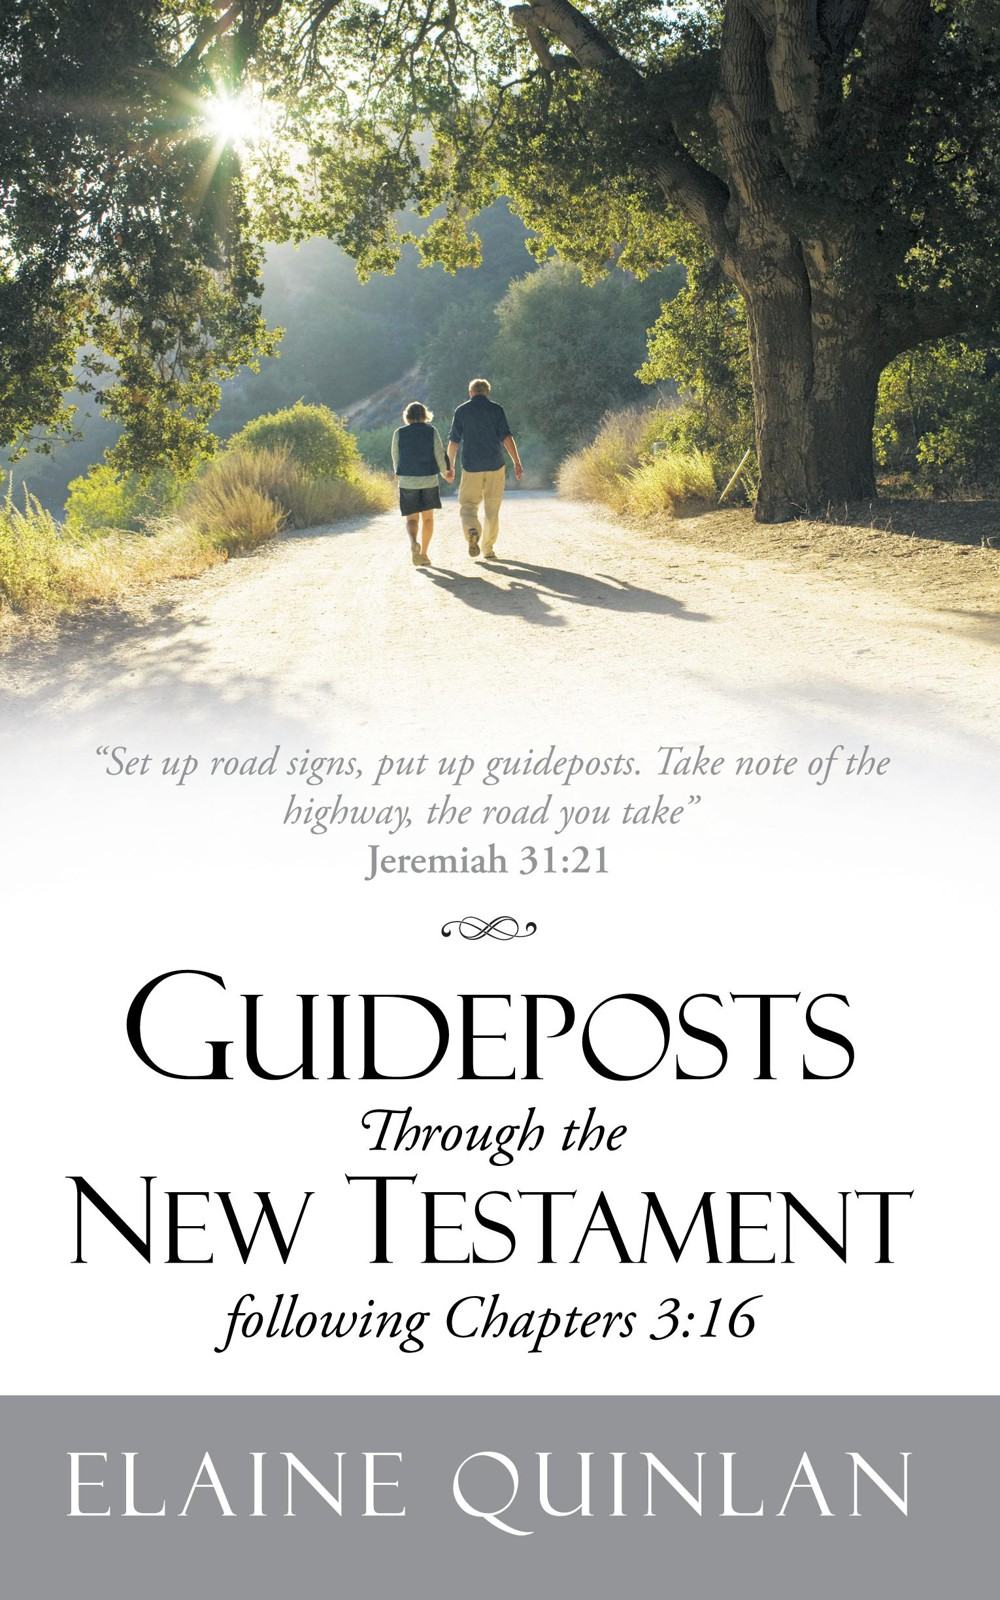 Guideposts Through the New Testament following Chapters 3:16 By: Elaine Quinlan